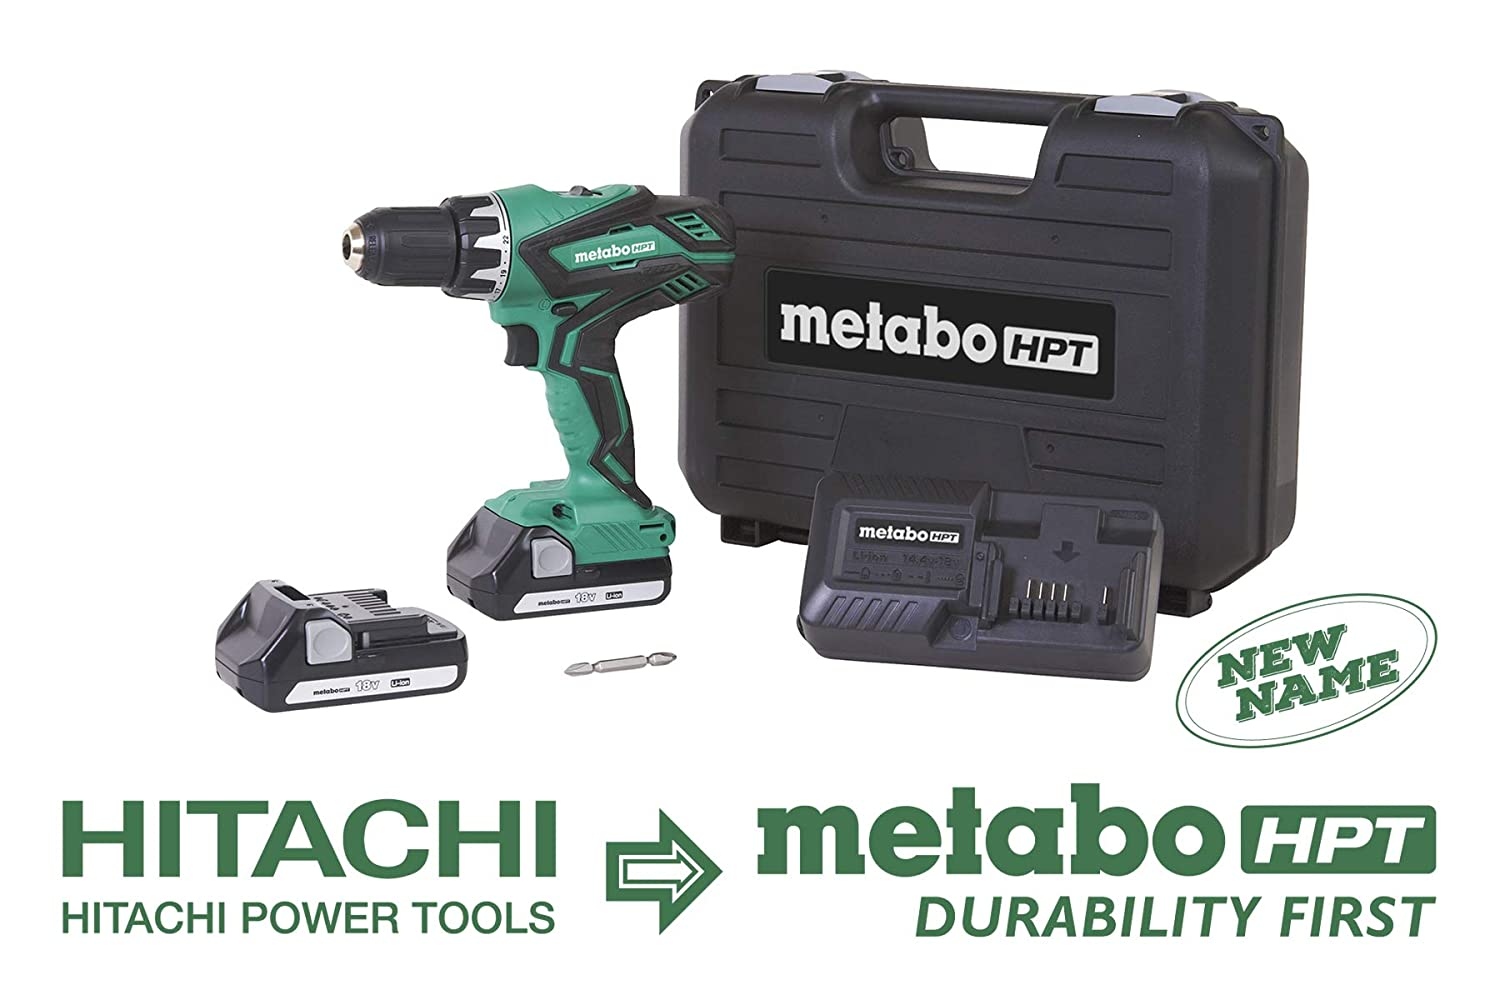 Metabo HPT DS18DGL 18V Cordless Driver Drill Kit, Includes 2 Lithium Ion Batteries, Carrying Bag, 1 2 Keyless Chuck, LED Light, 22 1 Stage Clutch, Variable Speed Trigger